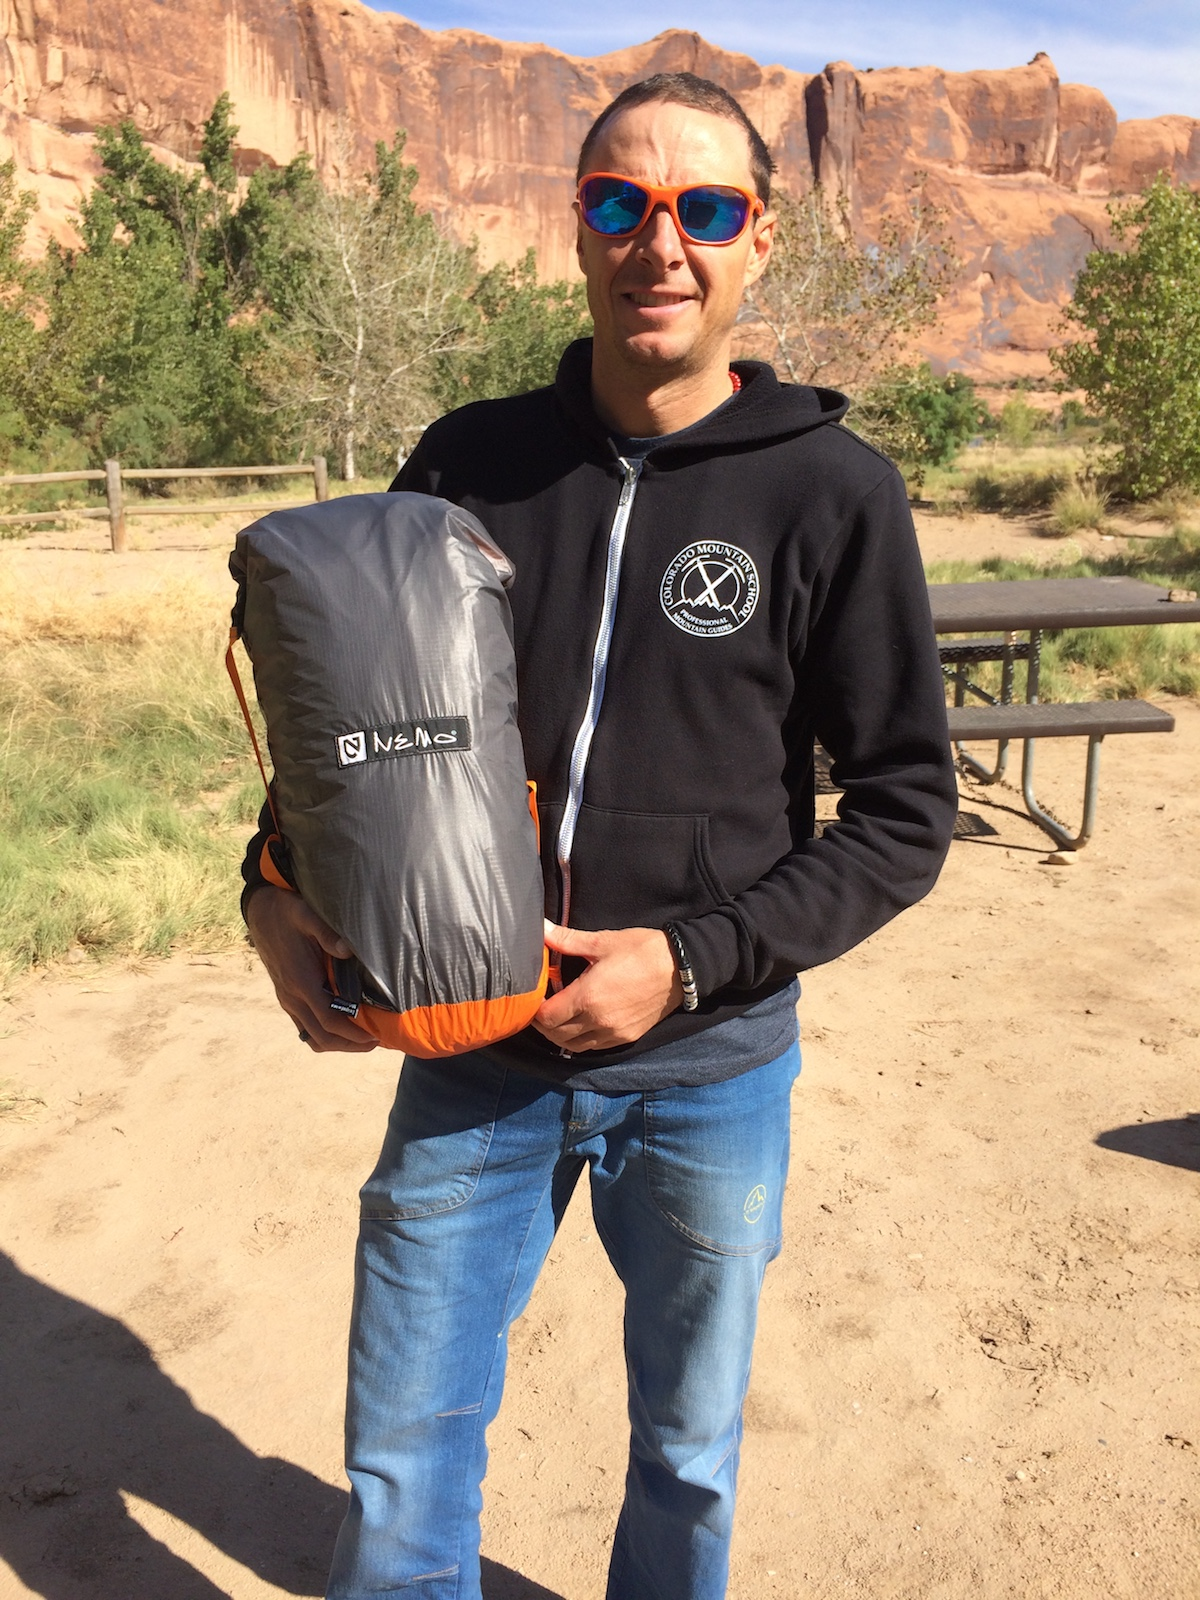 Mike Lewis holds the Nemo Chogori 3-person Mountaineering tent in its compression stuff sack. [Photo] Chris Wood